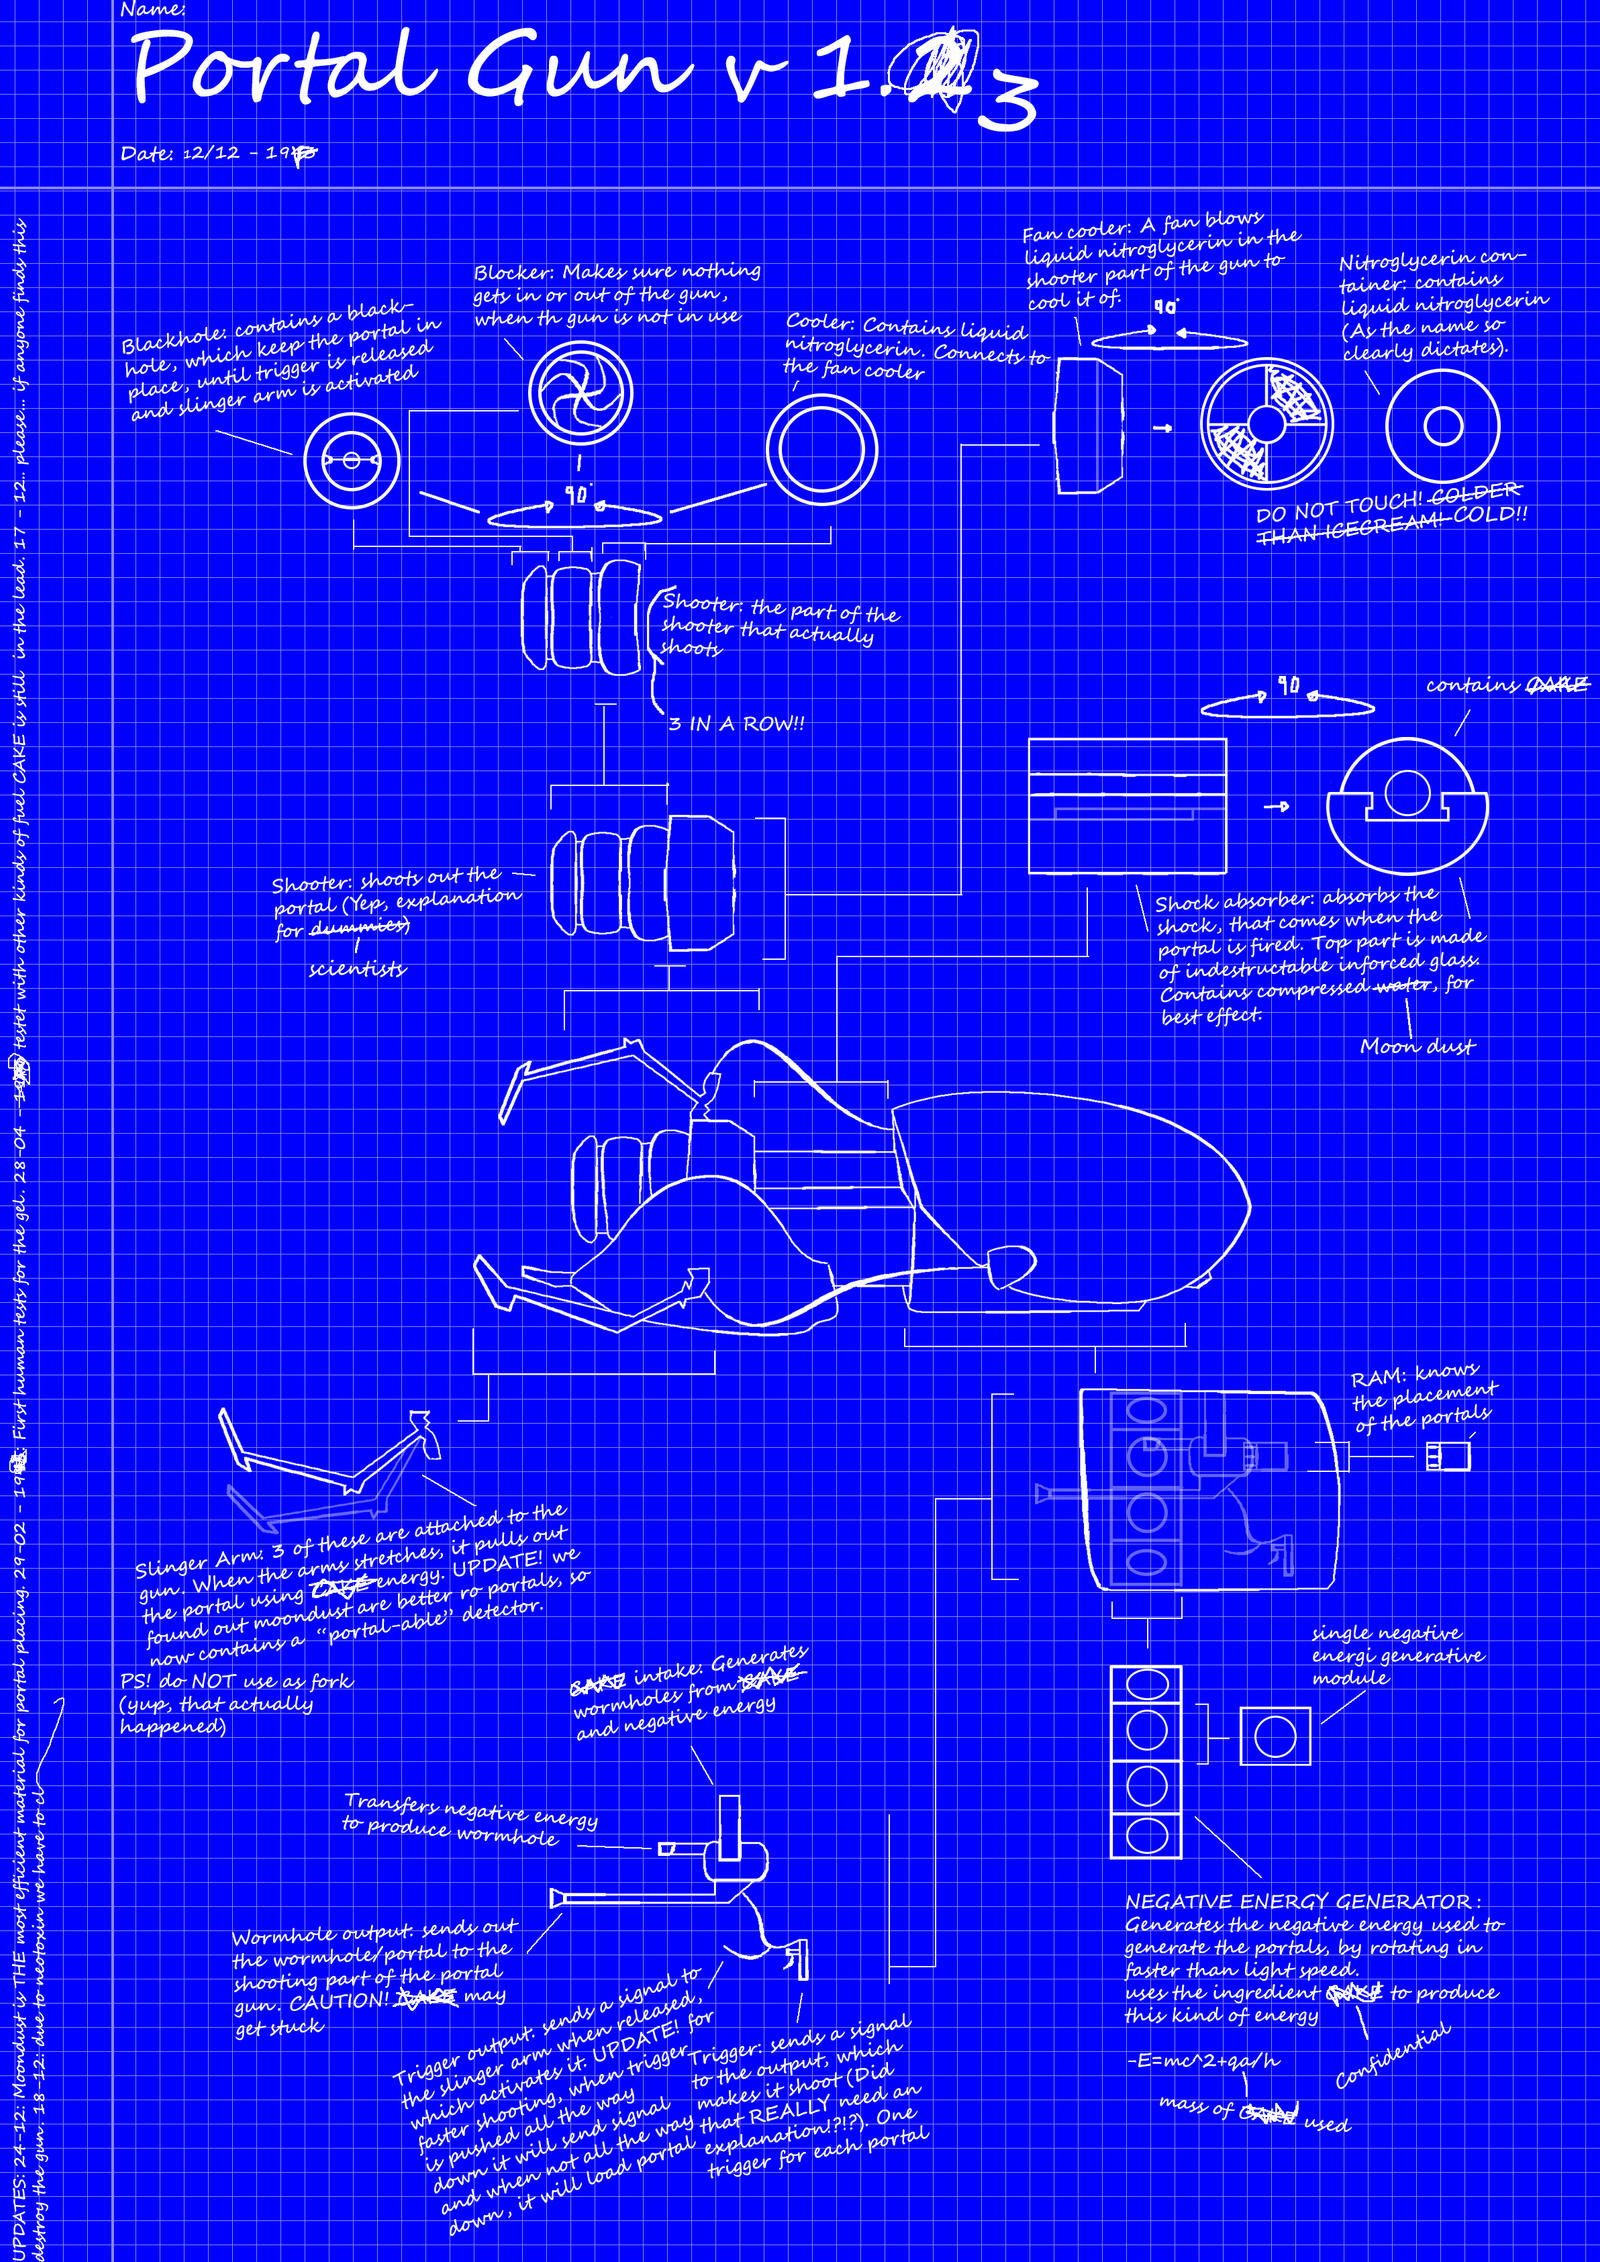 download software process quality: management and control (computer aided engineering